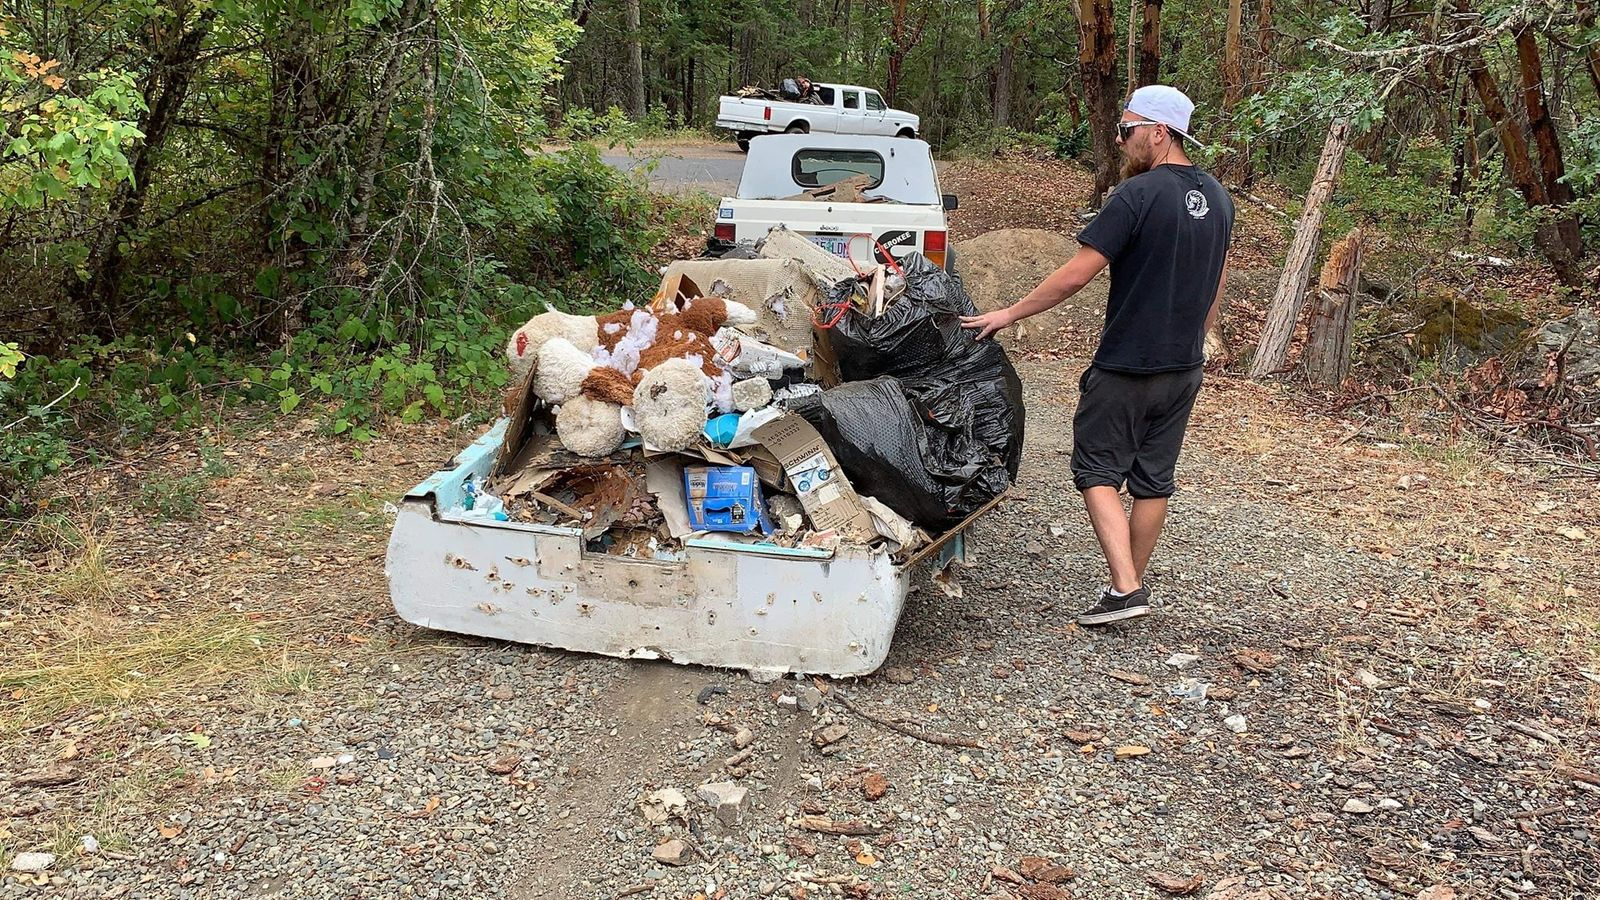 A load of garbage that Oregon Border Patrol pulled out of the forest last weekend. (Courtesy: Sam Watson){&nbsp;}<p></p>